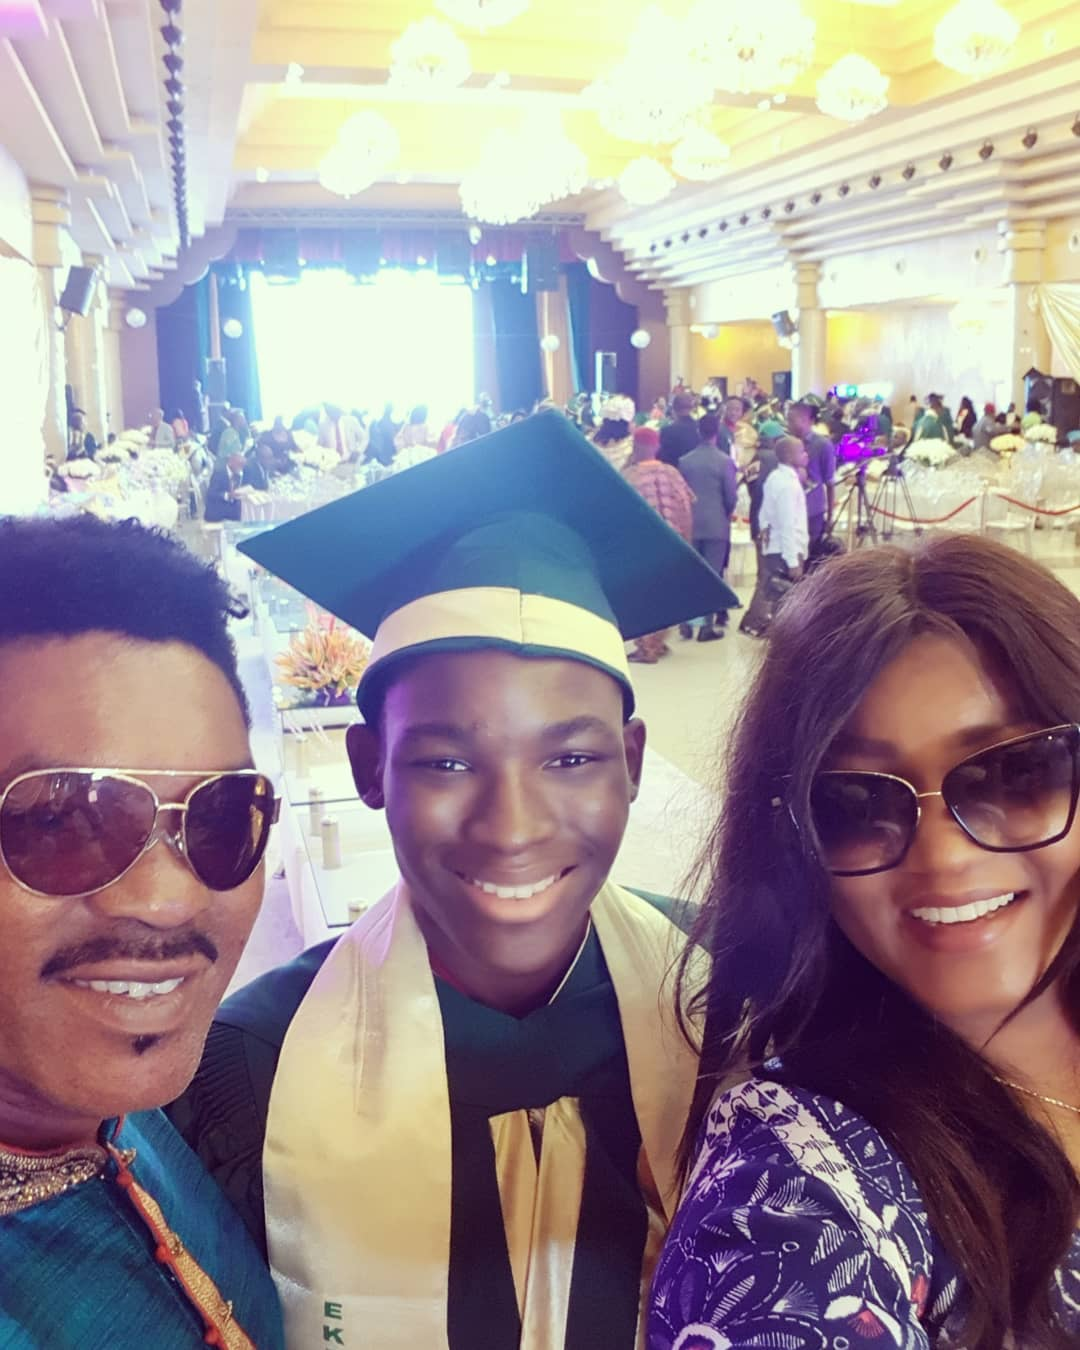 36612335 227521007889753 8263718301016784896 n - PHOTOS: Omotola's Son, Michael Graduates From Secondary School